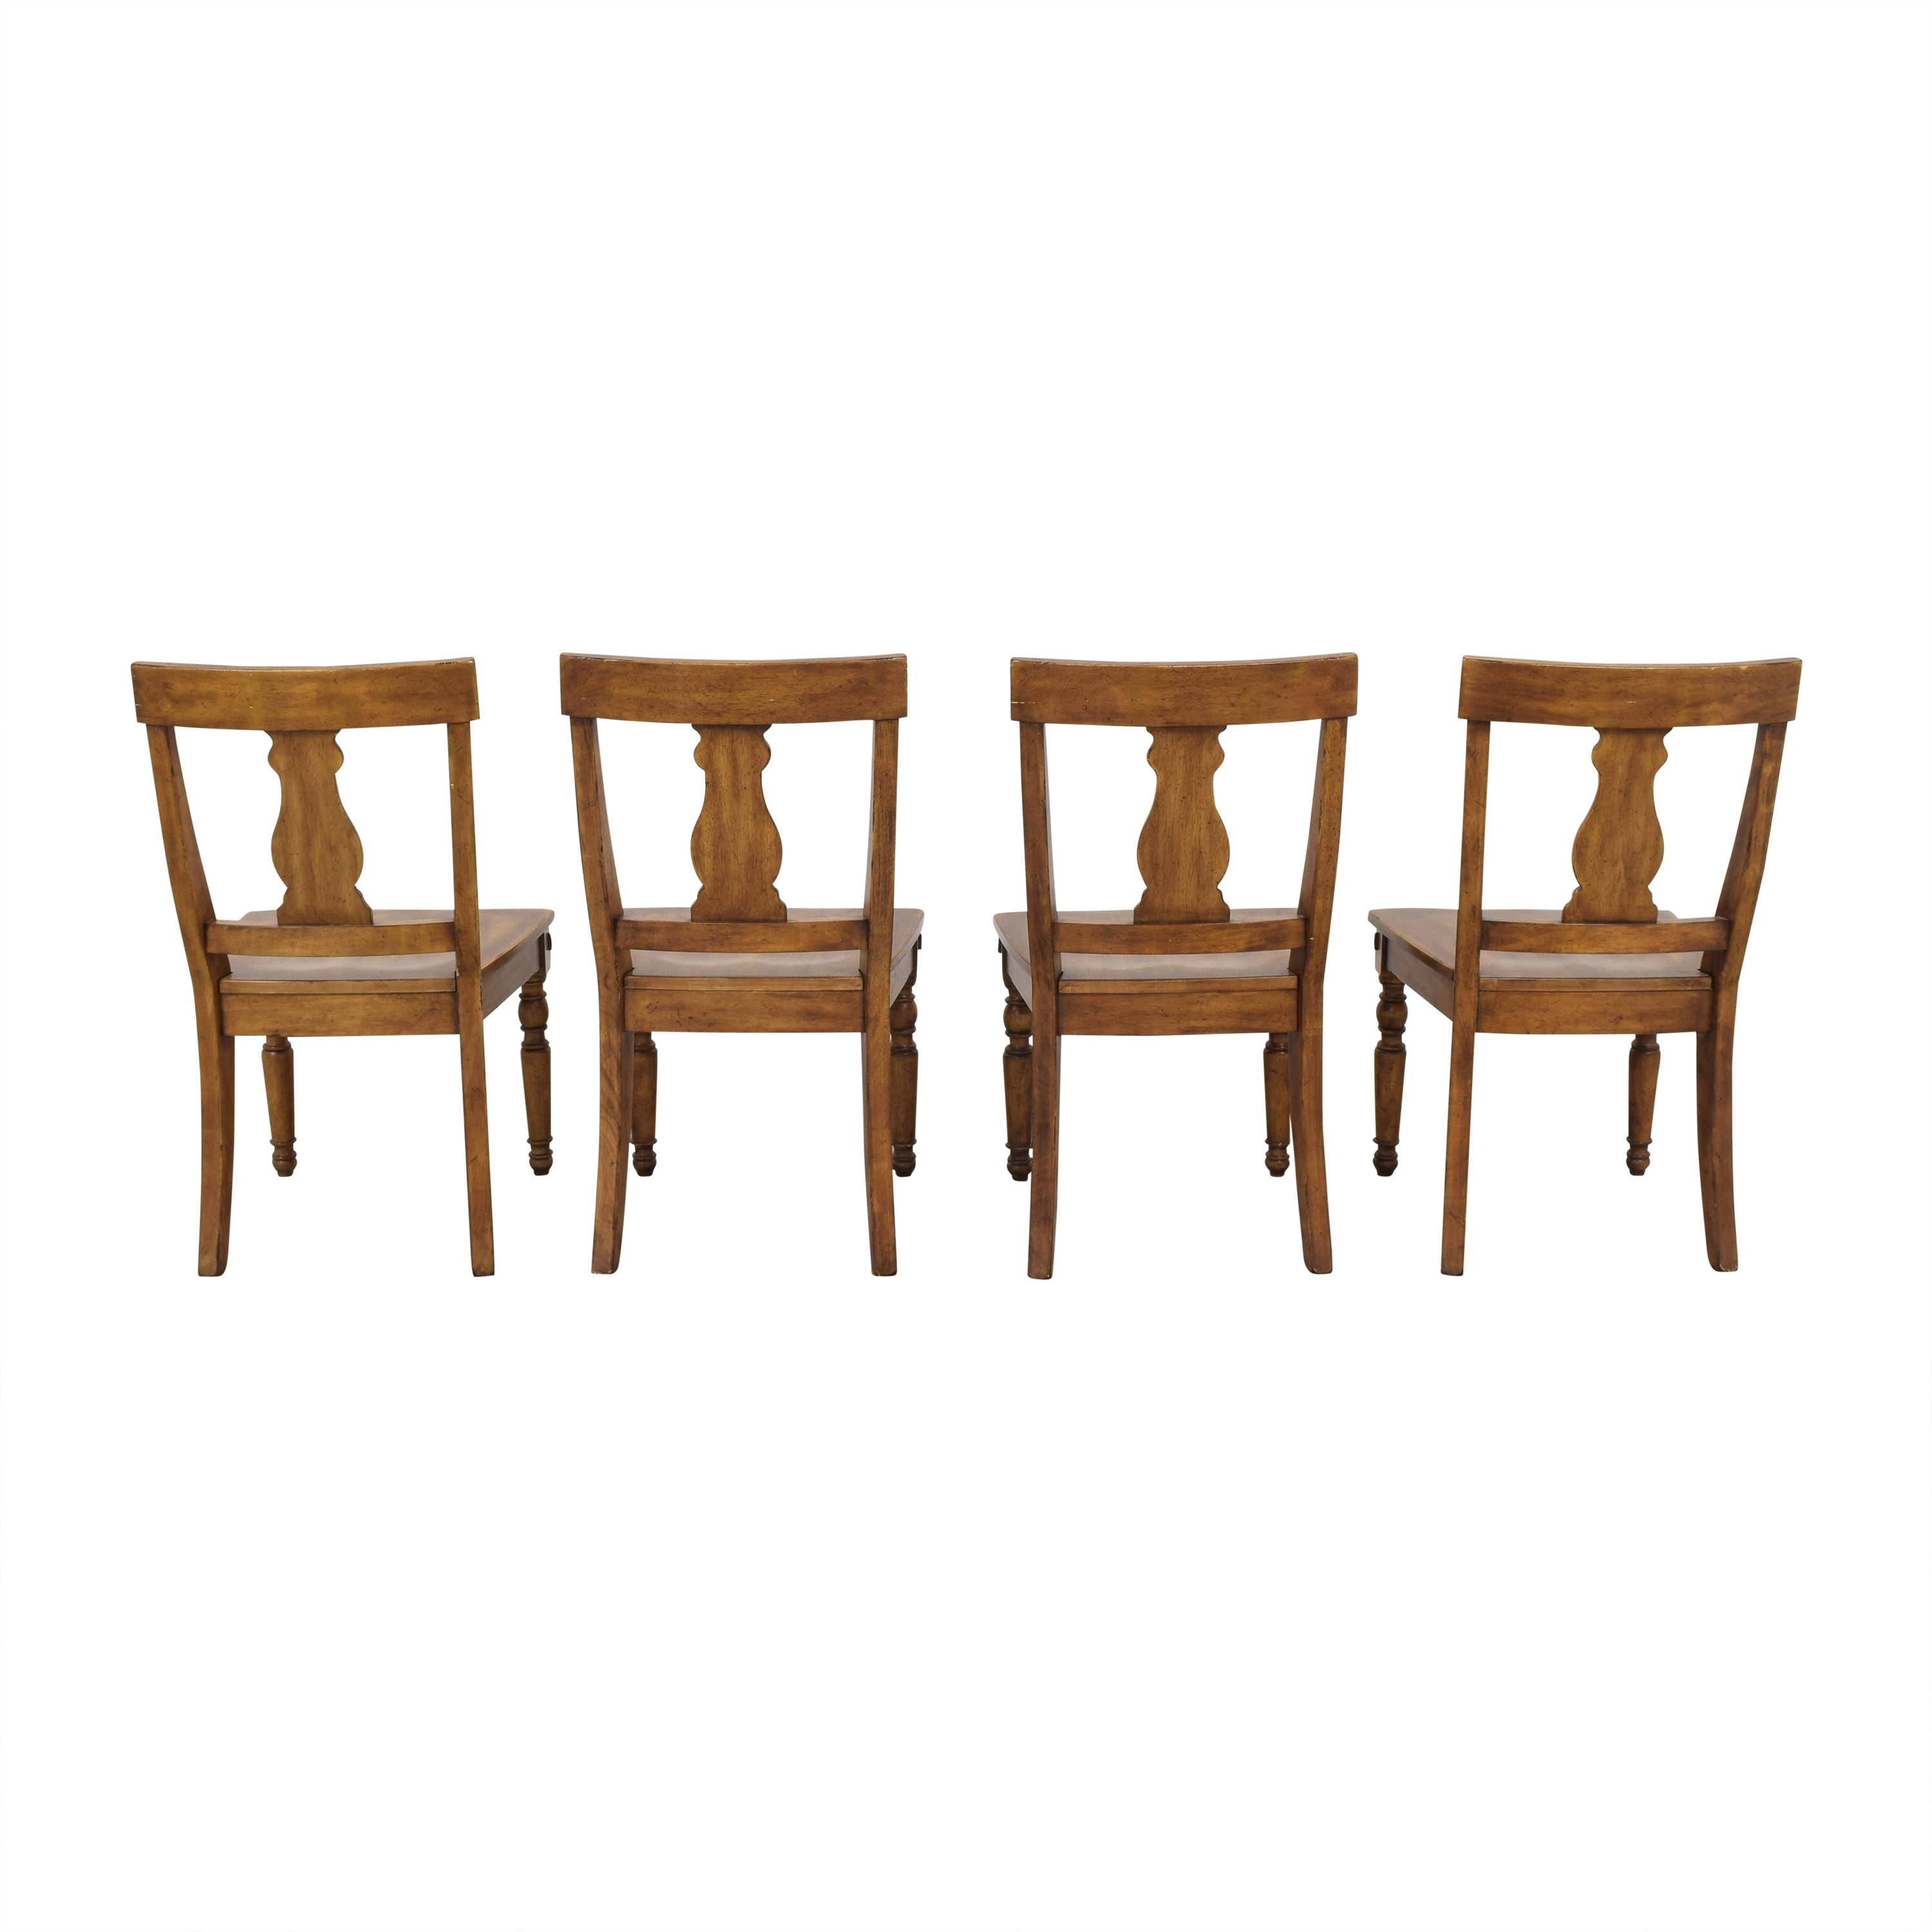 Pottery Barn Pottery Barn Dining Chairs coupon